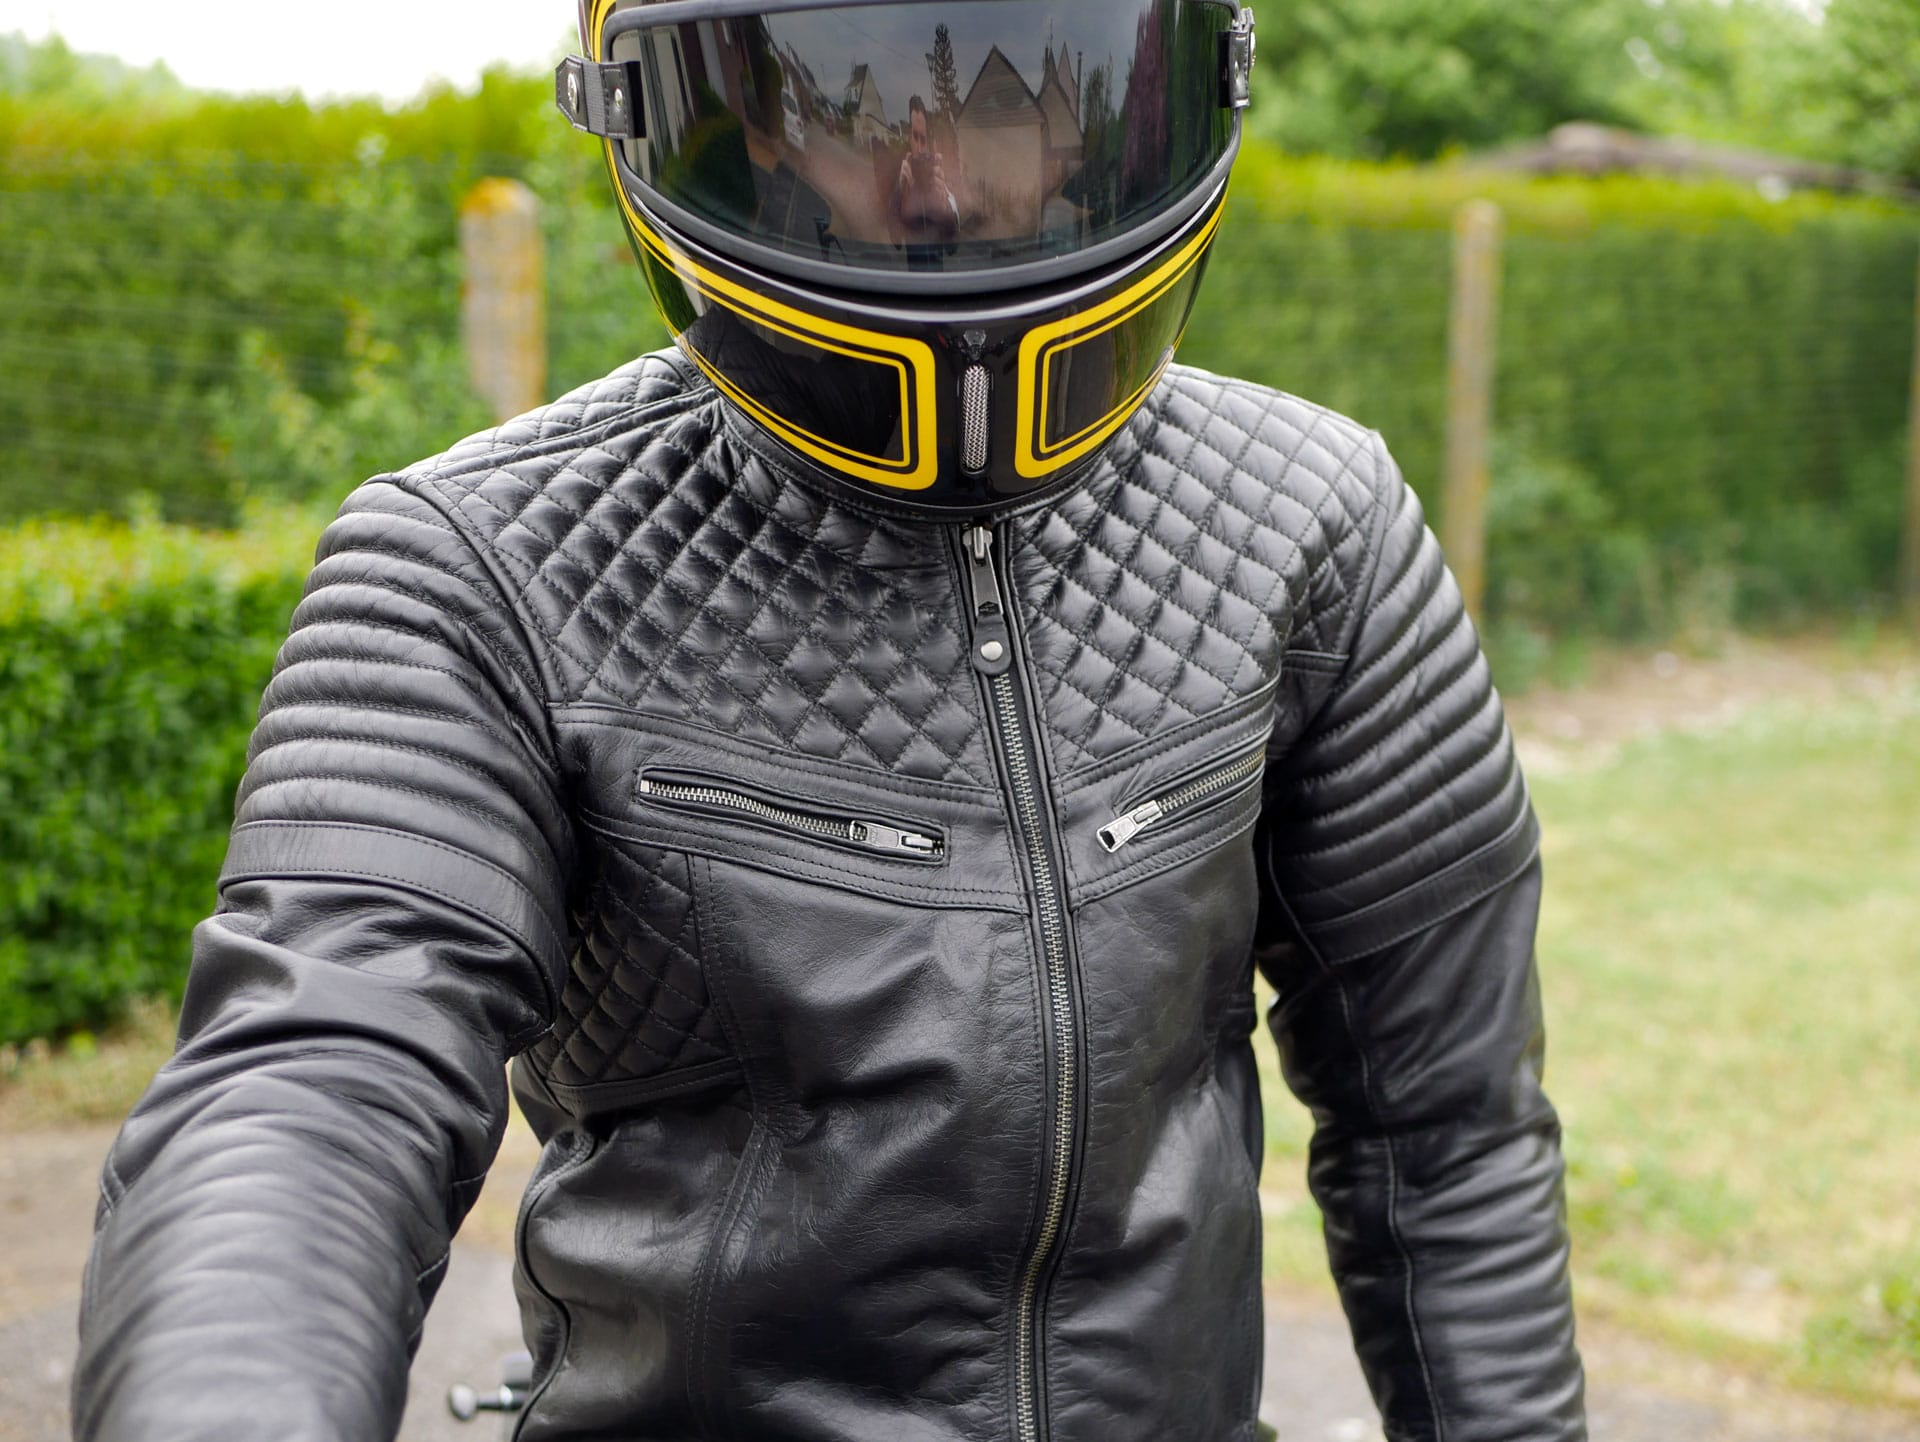 Test du blouson DXR Mark : néo retro classe Motard Adventure